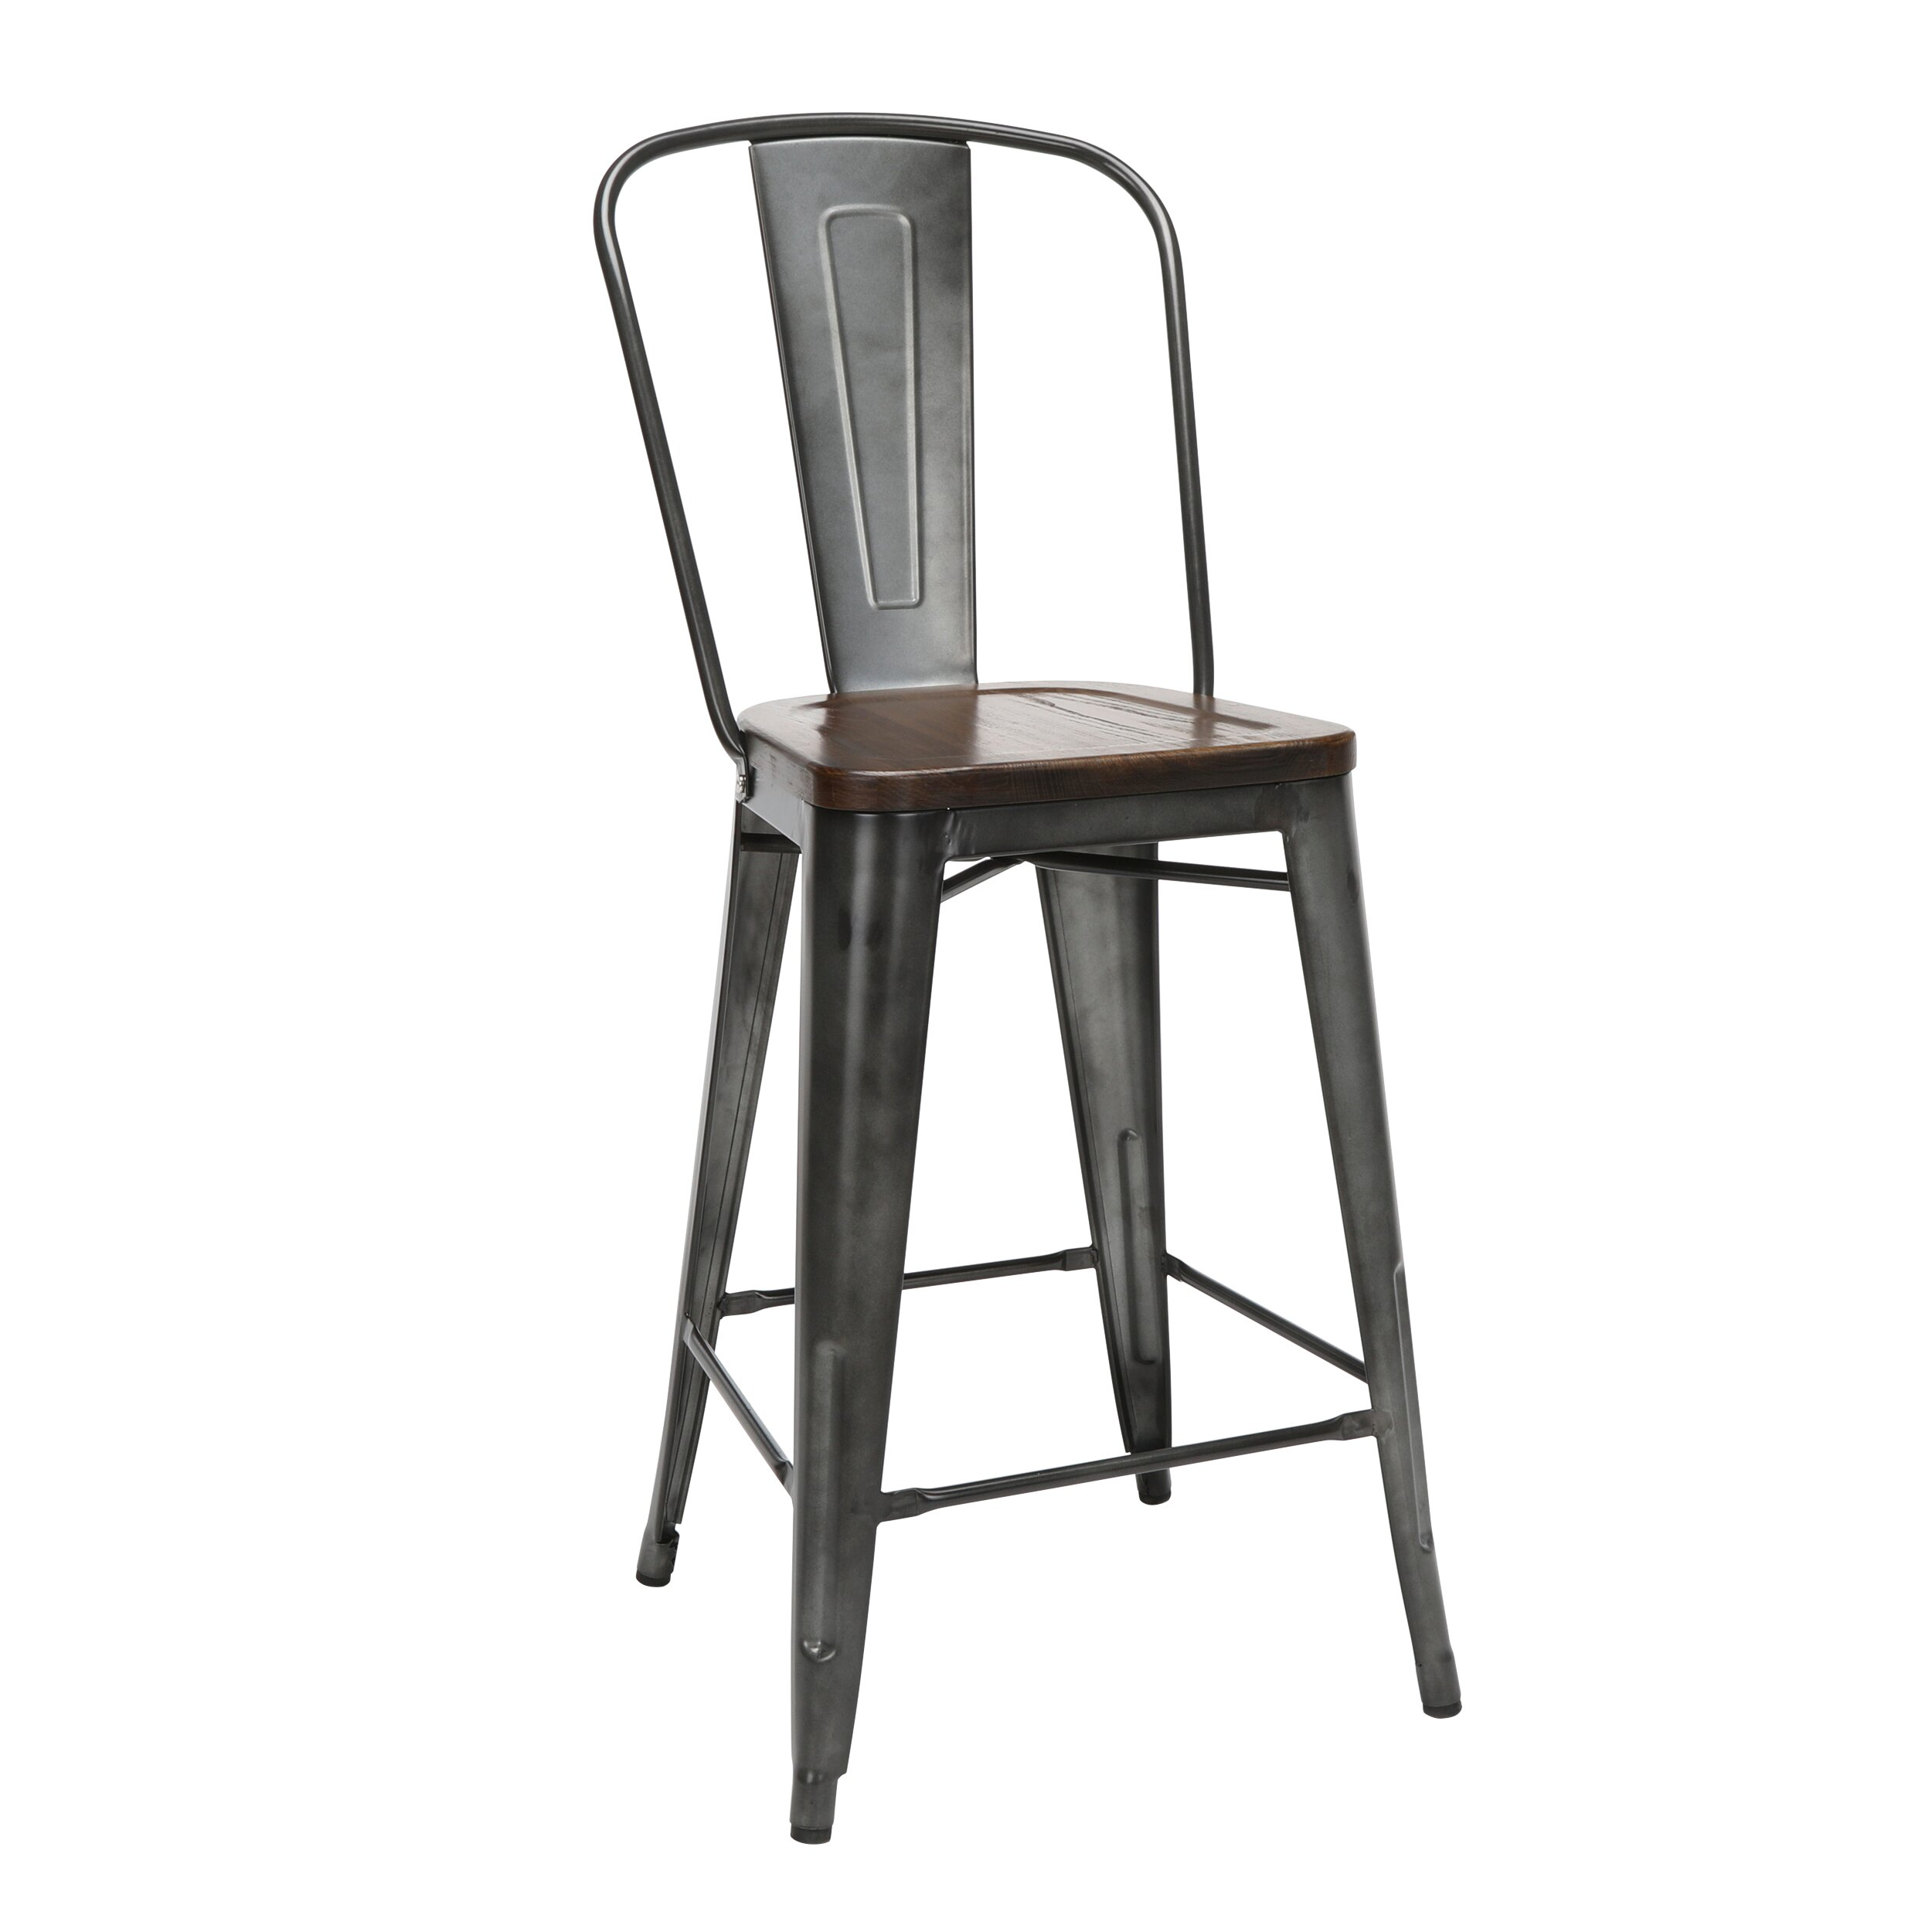 Excellent Ofm 161 Collection Industrial Modern 4 Pack 26 High Back Metal Stools With Solid Ash Wood Seats Galvanized Steel Bar Stools In Gunmetal Walnut Theyellowbook Wood Chair Design Ideas Theyellowbookinfo